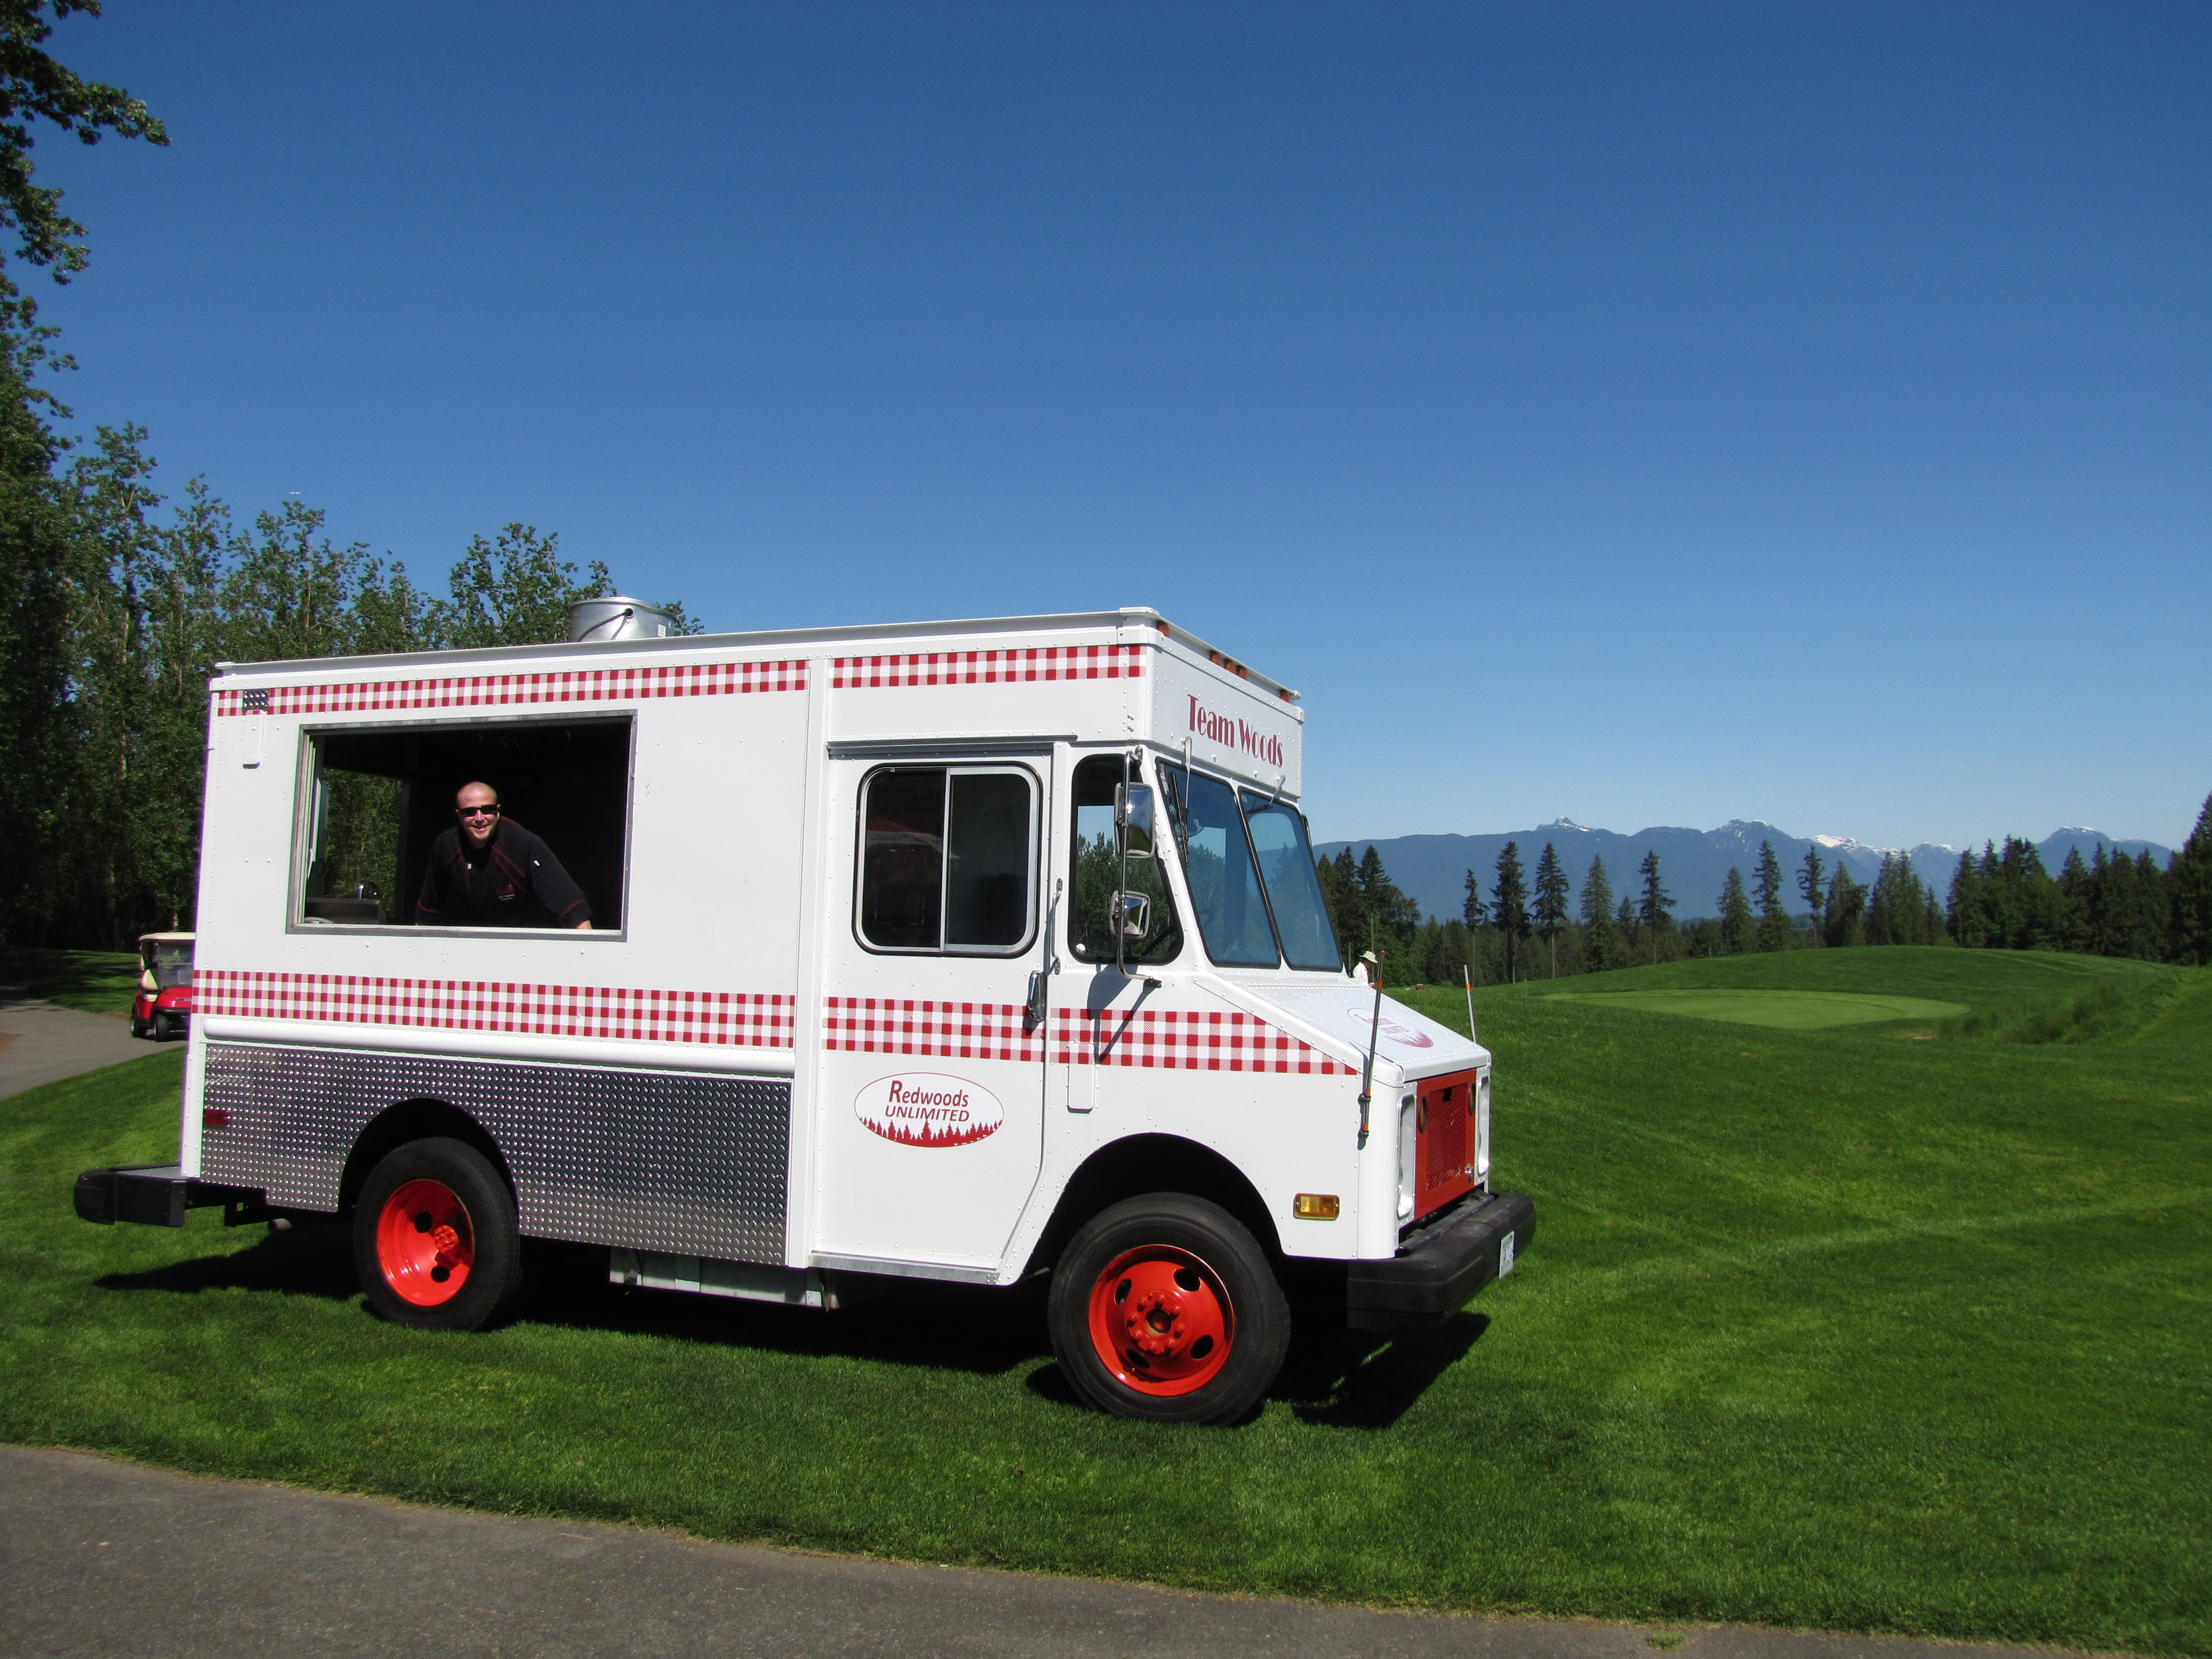 Golf course food truck